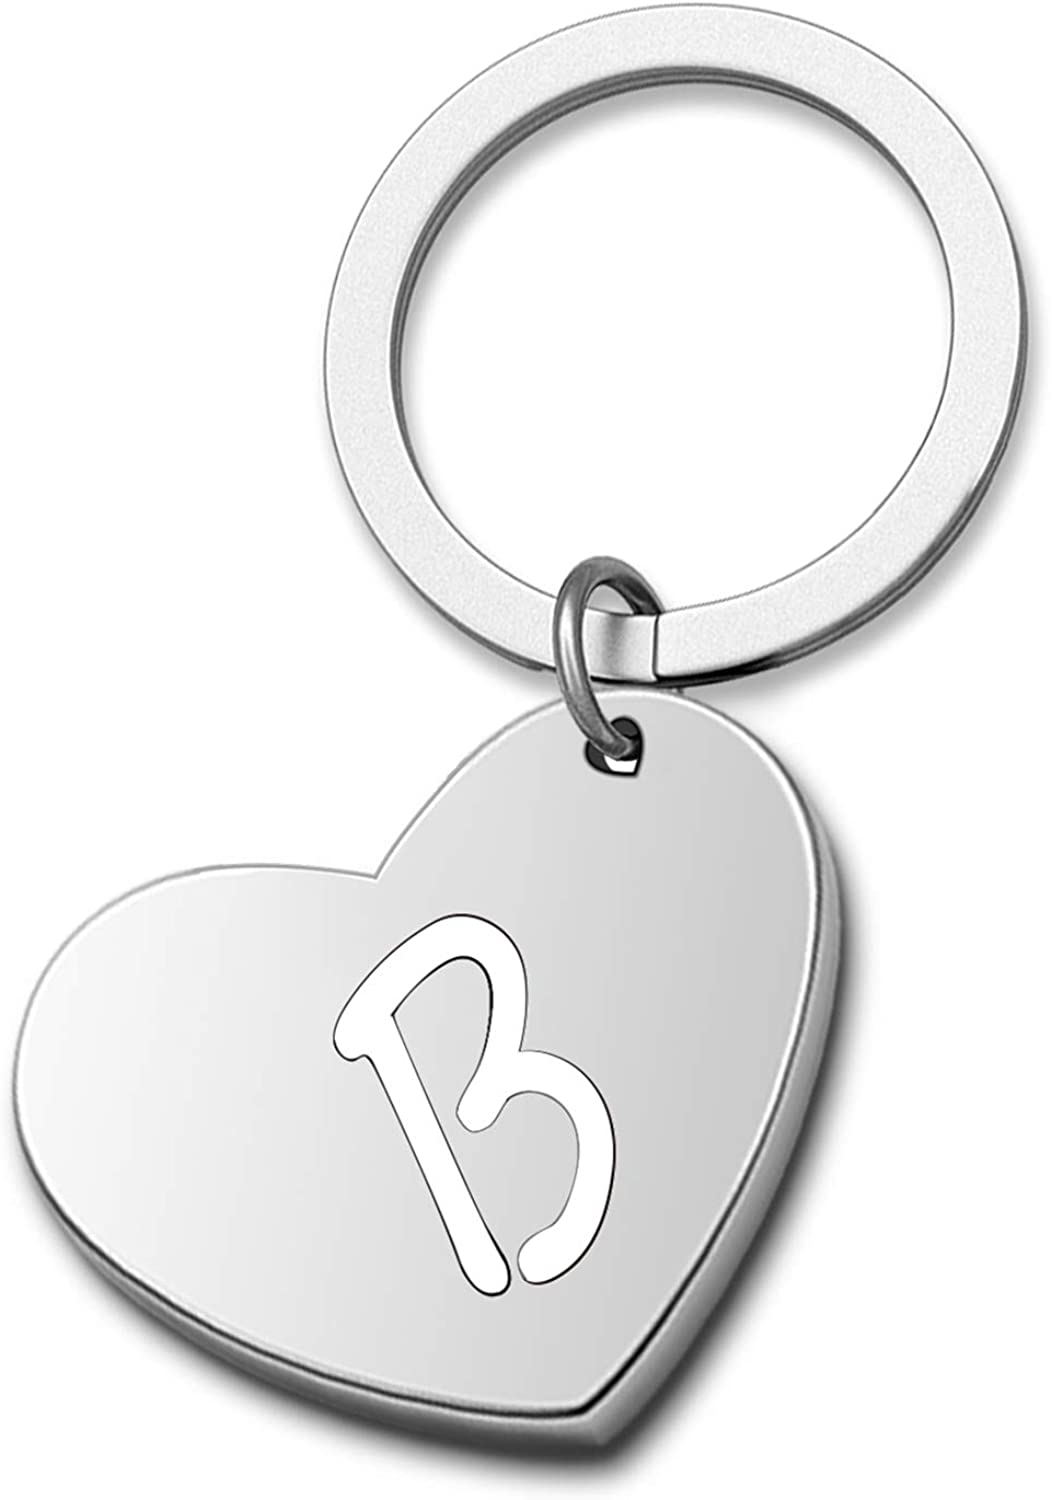 Personalized Initial Keychain Hollow Cut Alphab Out Outlet Max 64% OFF SALE